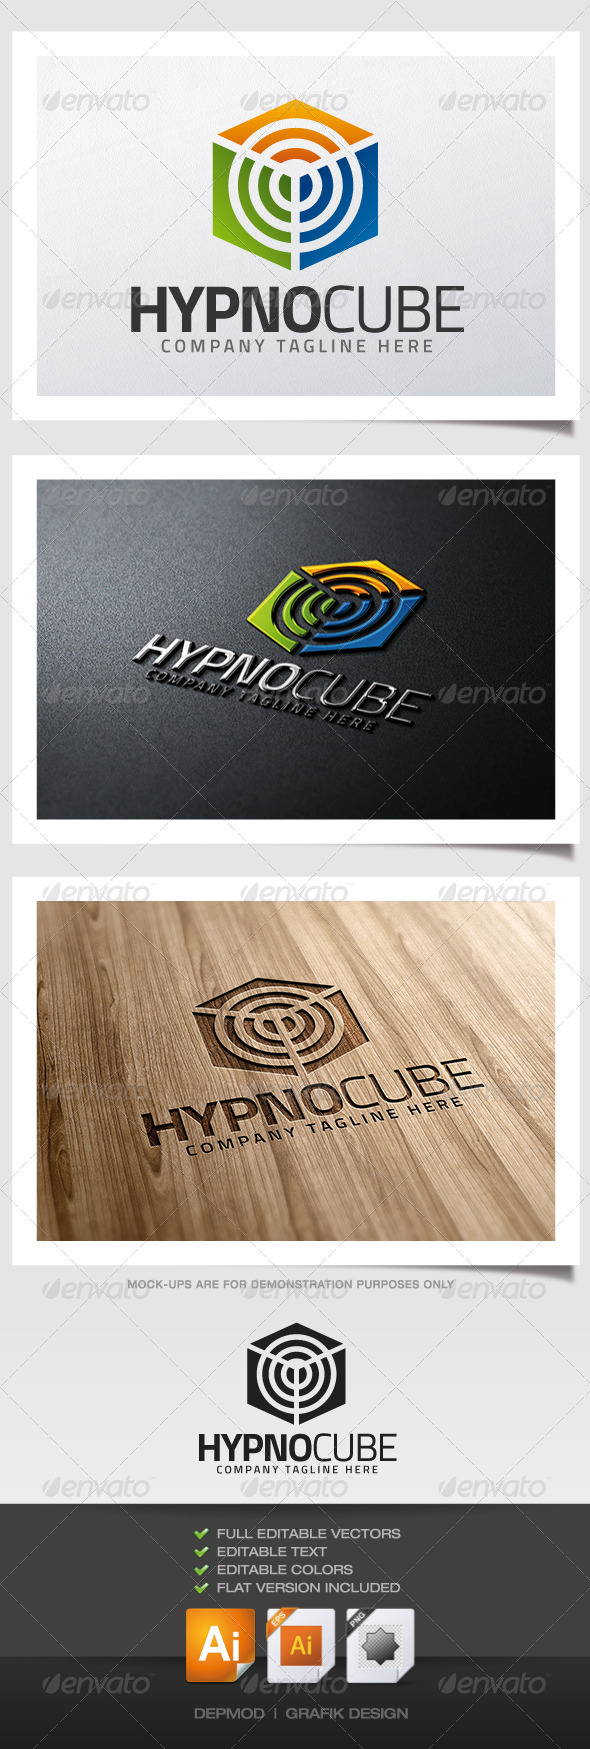 Hypno Cube Logo - Abstract Logo Templates